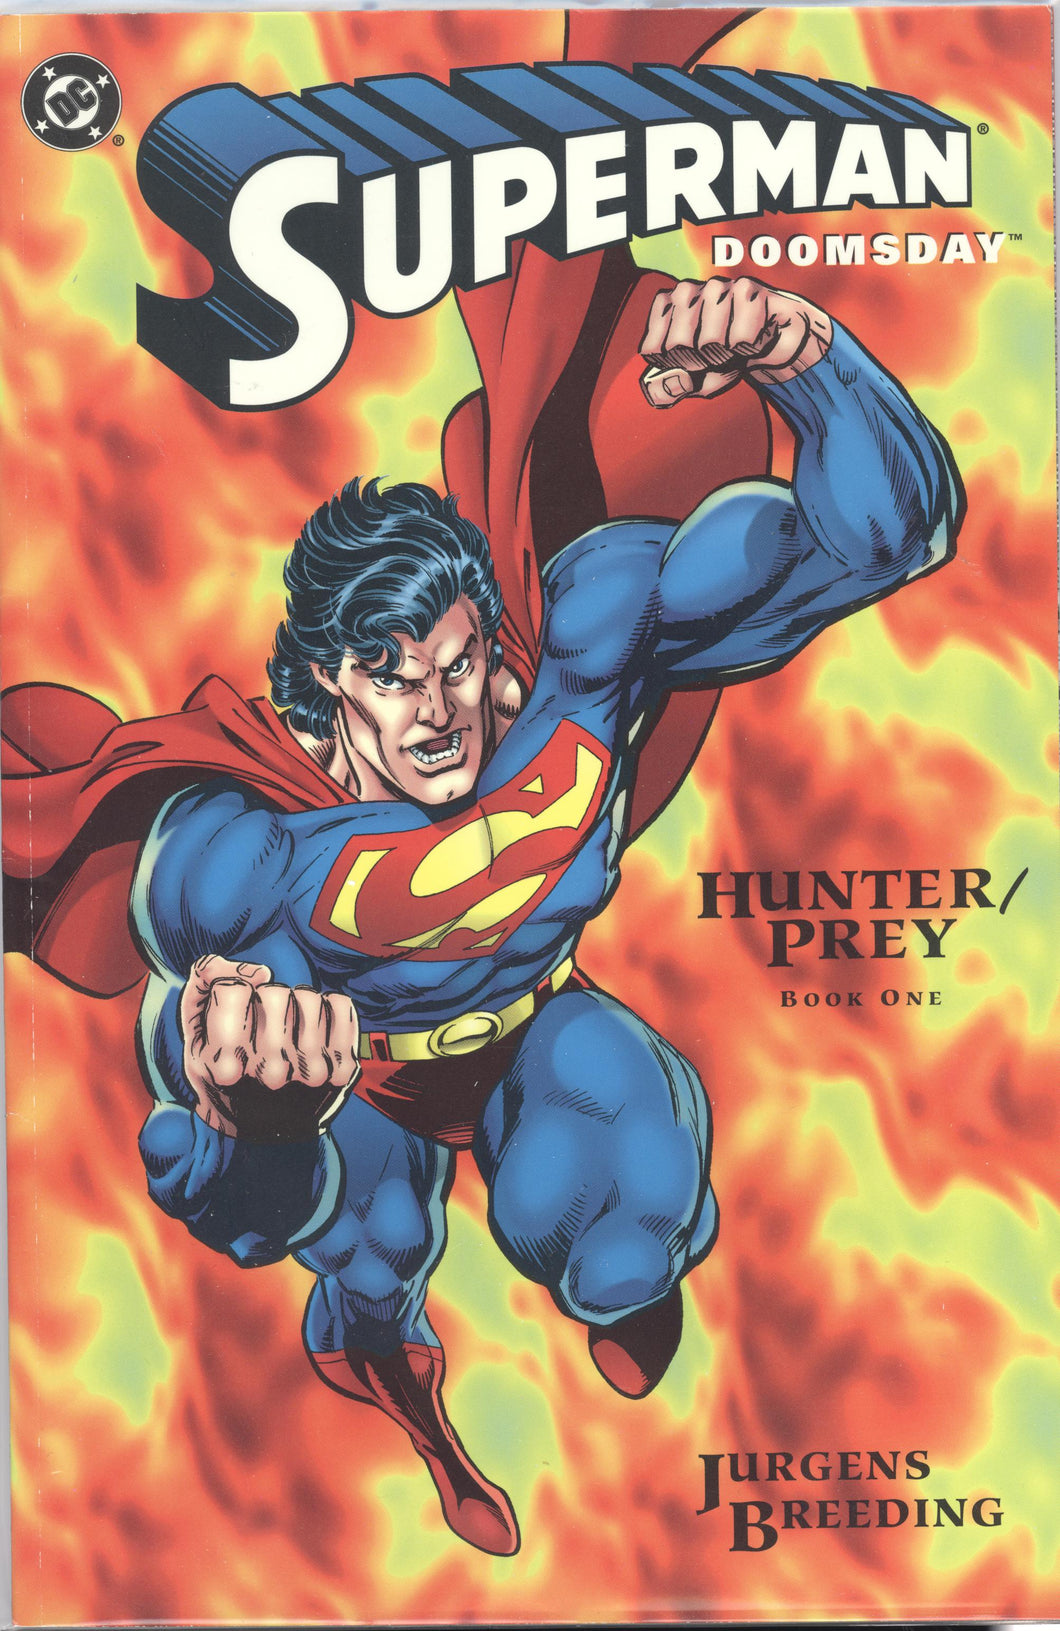 SUPERMAN DOOMSDAY: HUNTER PREY (1994 DC Comics) #1-3 COMPLETE SET